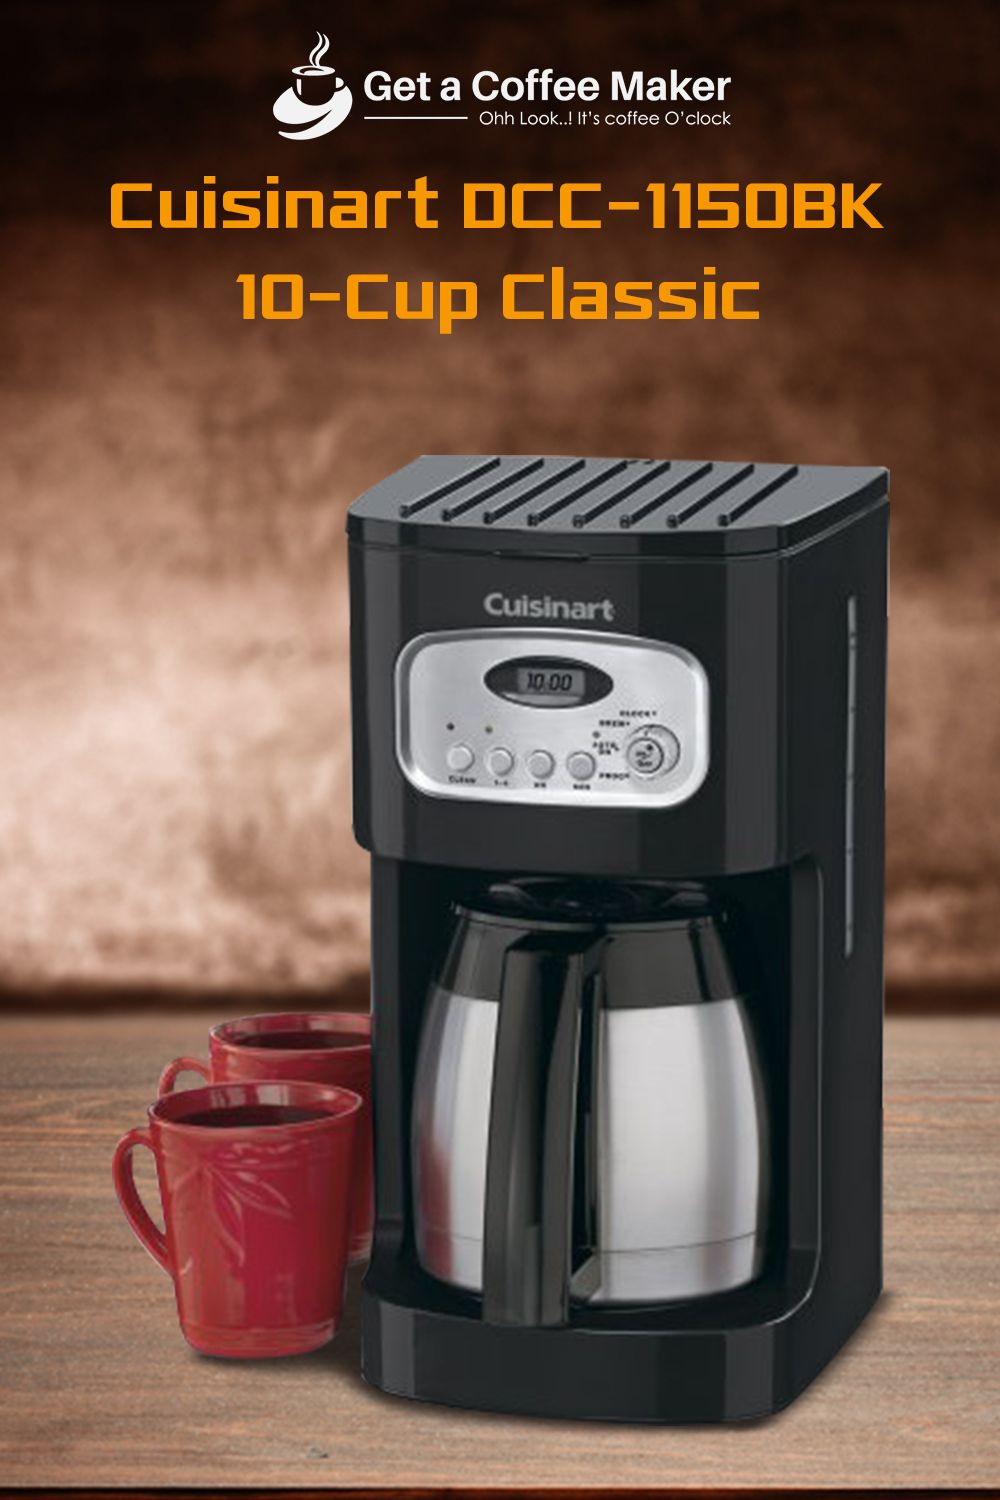 Top 10 Drip Coffee Makers June 2020 Reviews Buyers Guide Best Drip Coffee Maker Drip Coffee Maker Coffee Maker